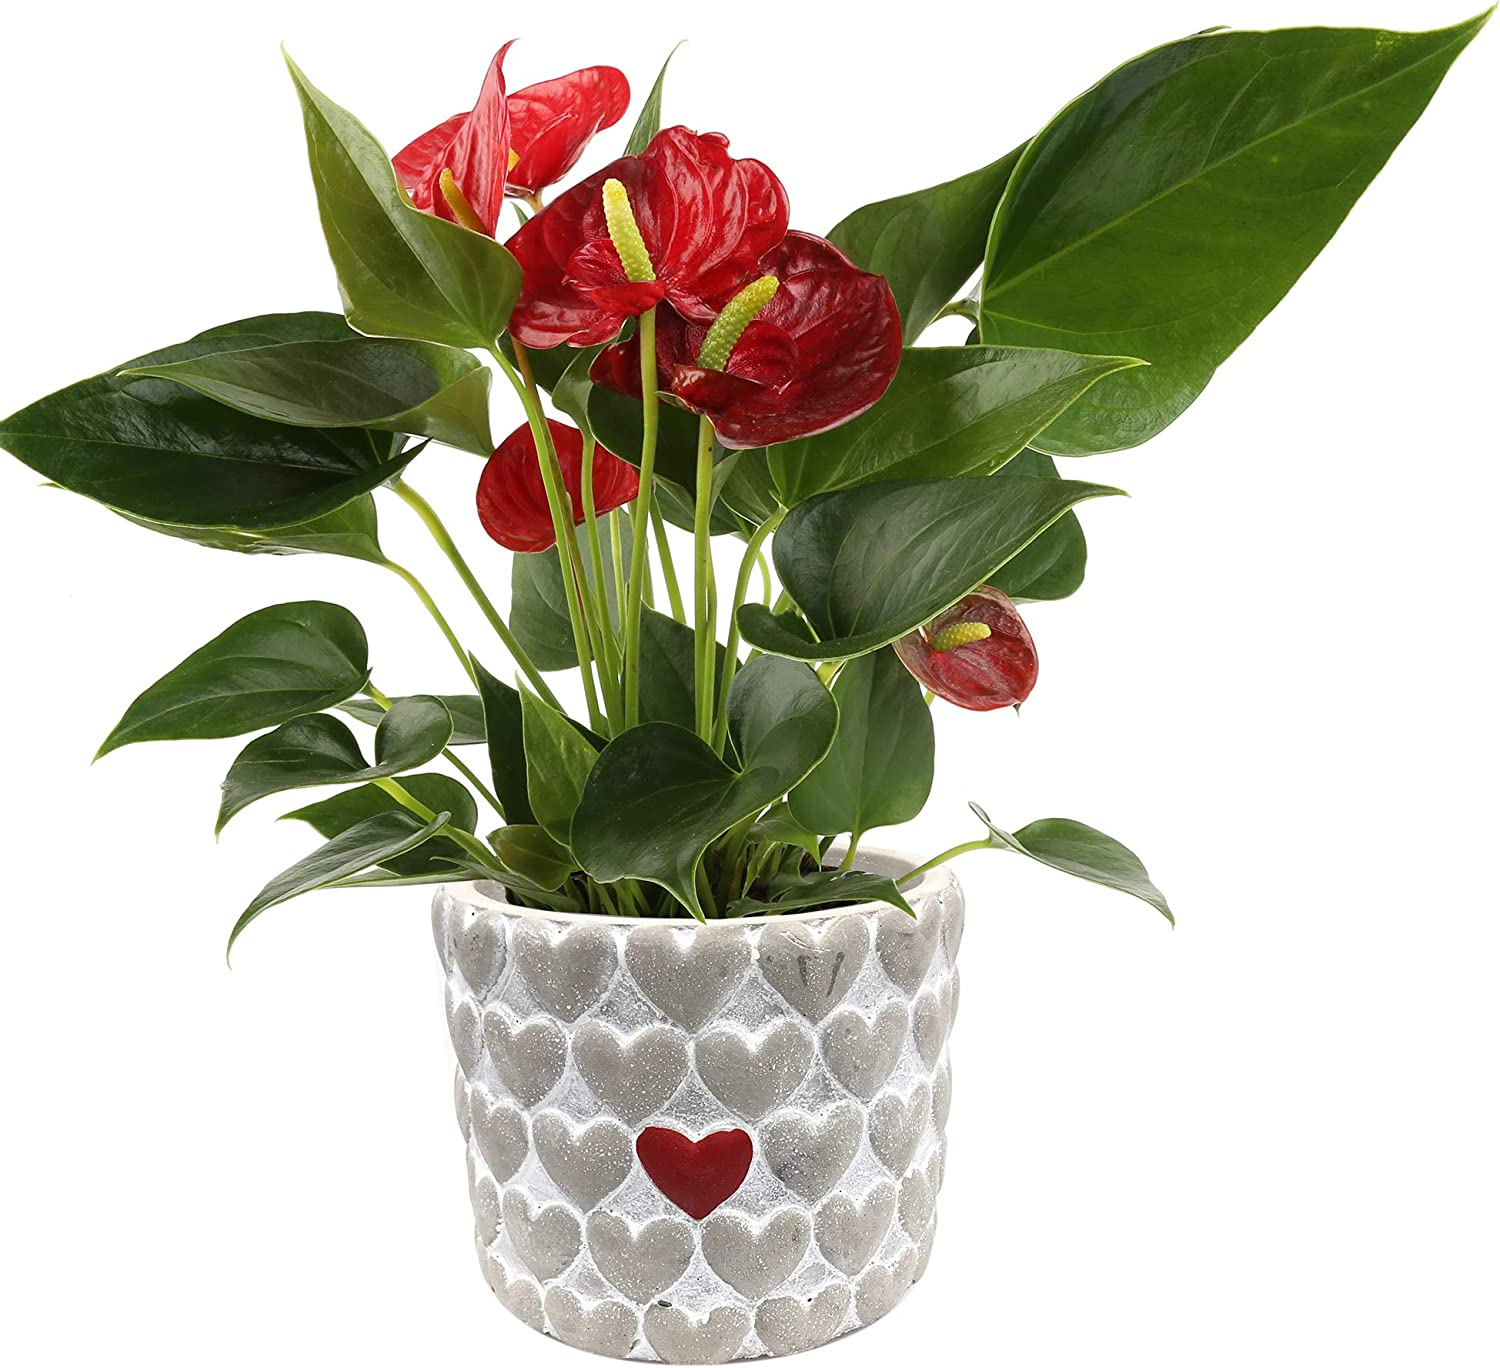 Costa Farms Live Anthurium Indoor Plant In Premium Heart Stone Planter 10 Inches Tall Mother S Day Gift Garden Outdoor